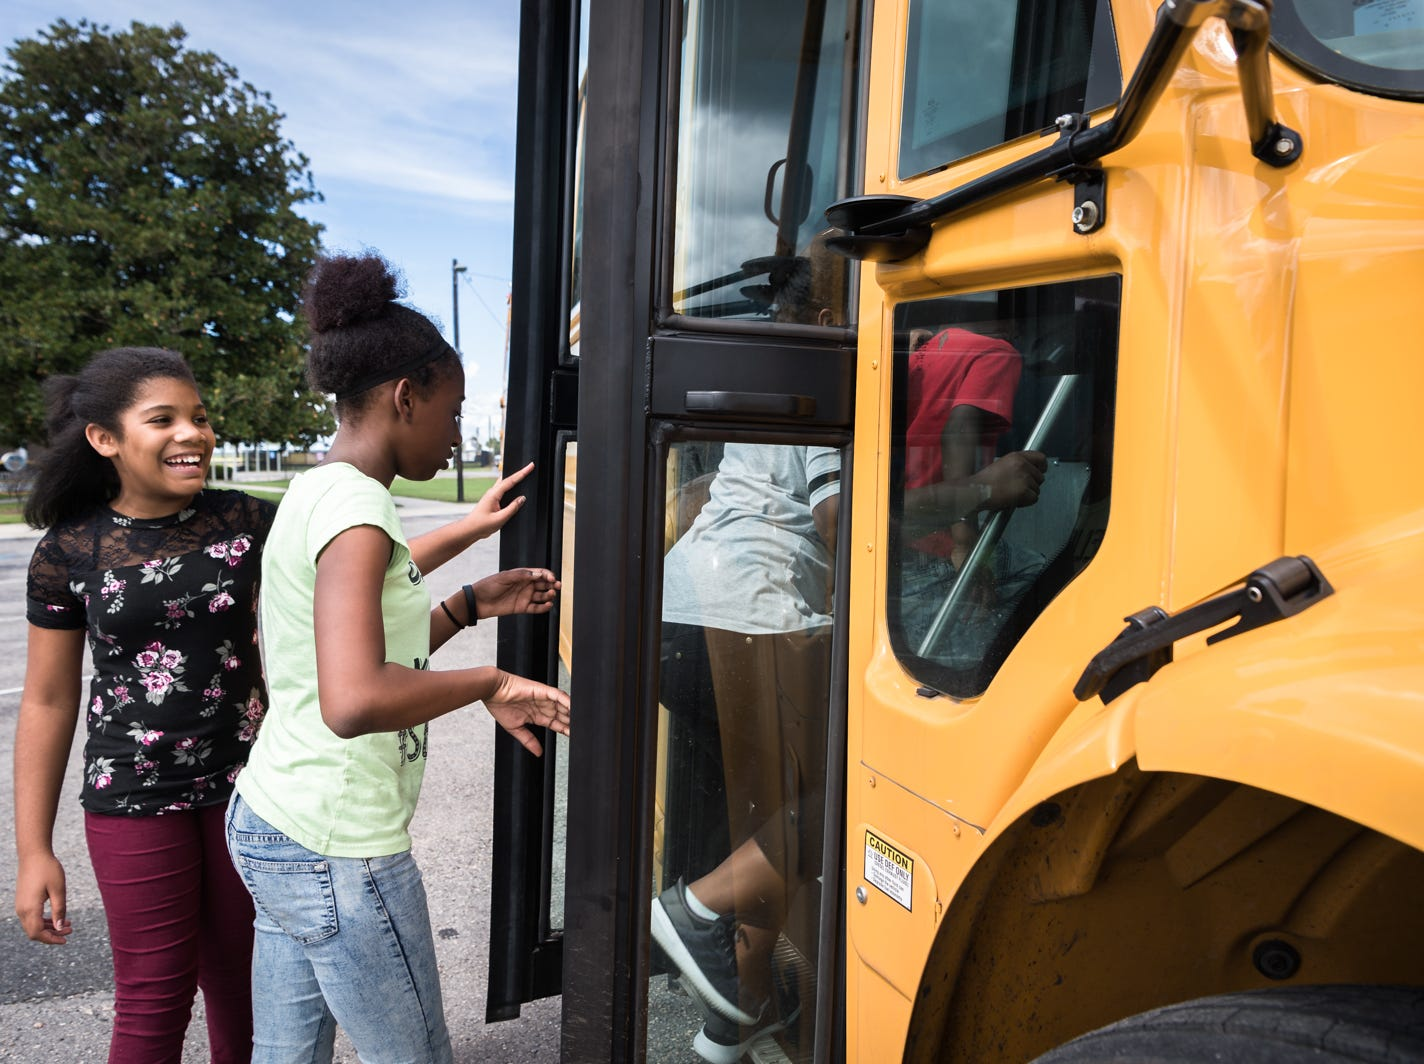 Children board a bus leaving for Knightdale high school in Knightdale, a suburb of Raleigh before Hurricane Florence makes landfall, Sept. 12, 2018. A storm surge of about three to six feet is expected for Swan Quarter, and around six feet for Ocracoke Island with 12-20 inches of rainfall for the entire area. Hyde county as well as several surrounding counties are under mandatory evacuation.